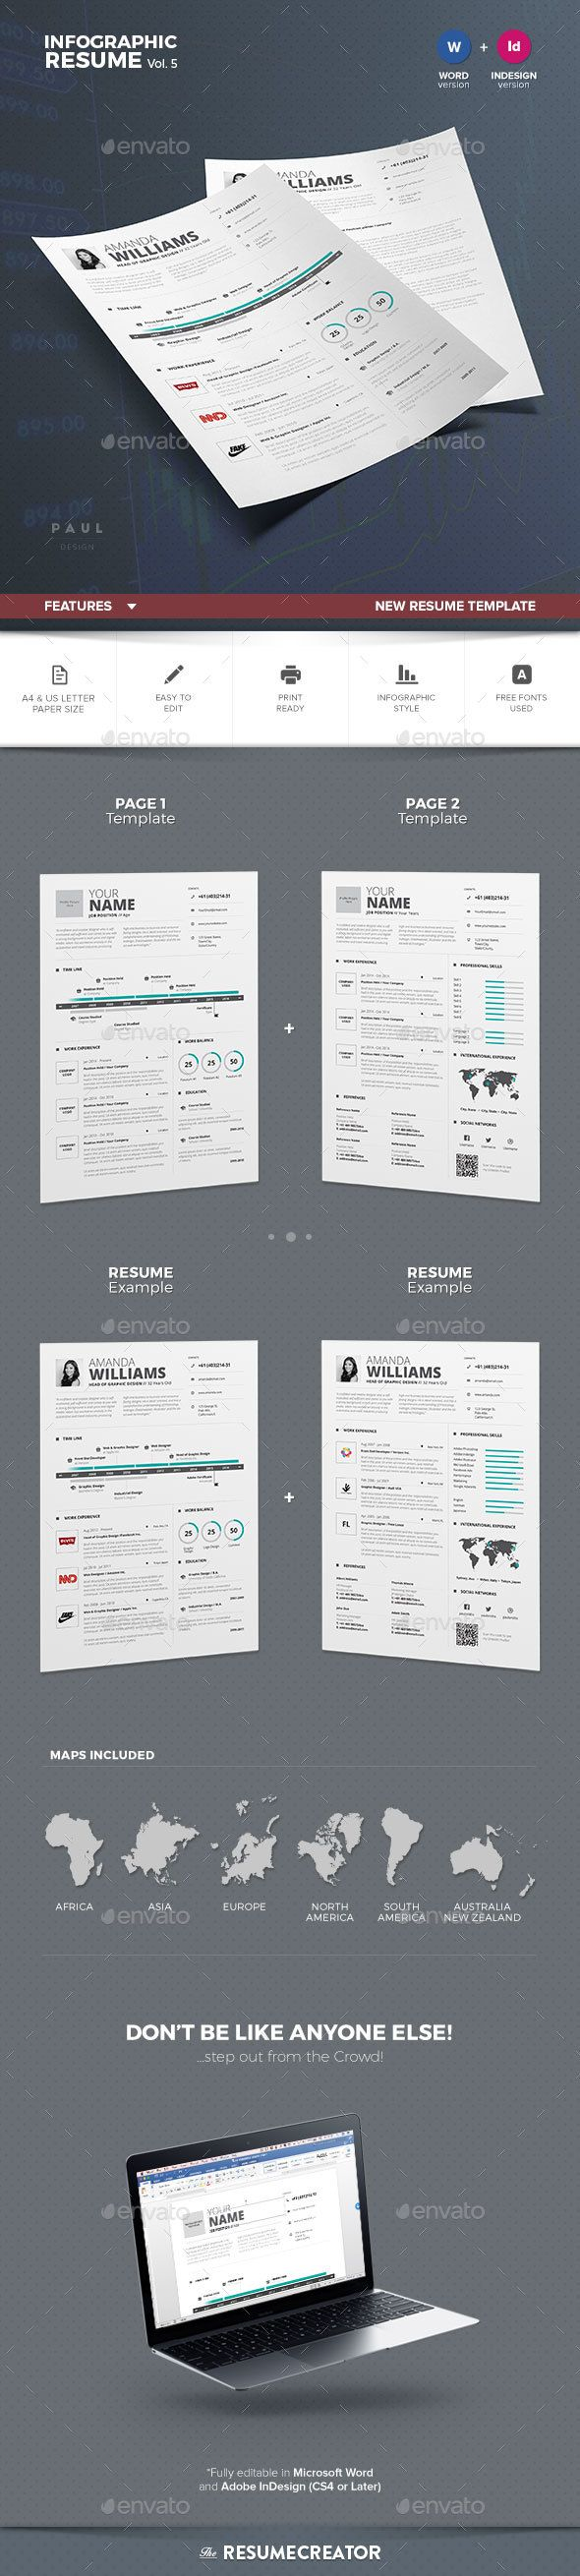 Infographic Resume Cv Template MS Word